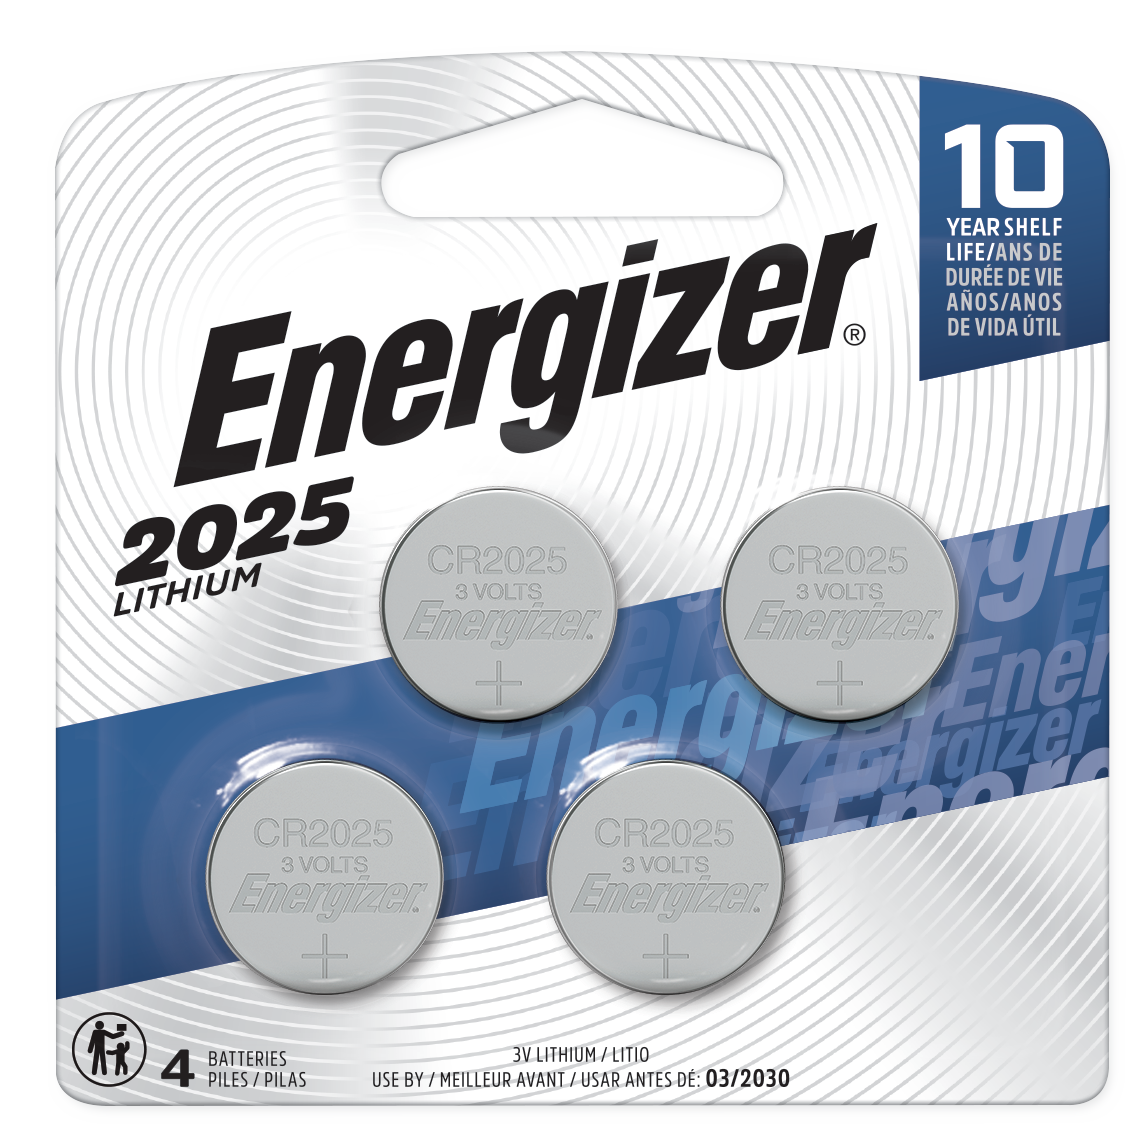 slide 1 of 2, Energizer 2025 Lithium Coin Batteries,